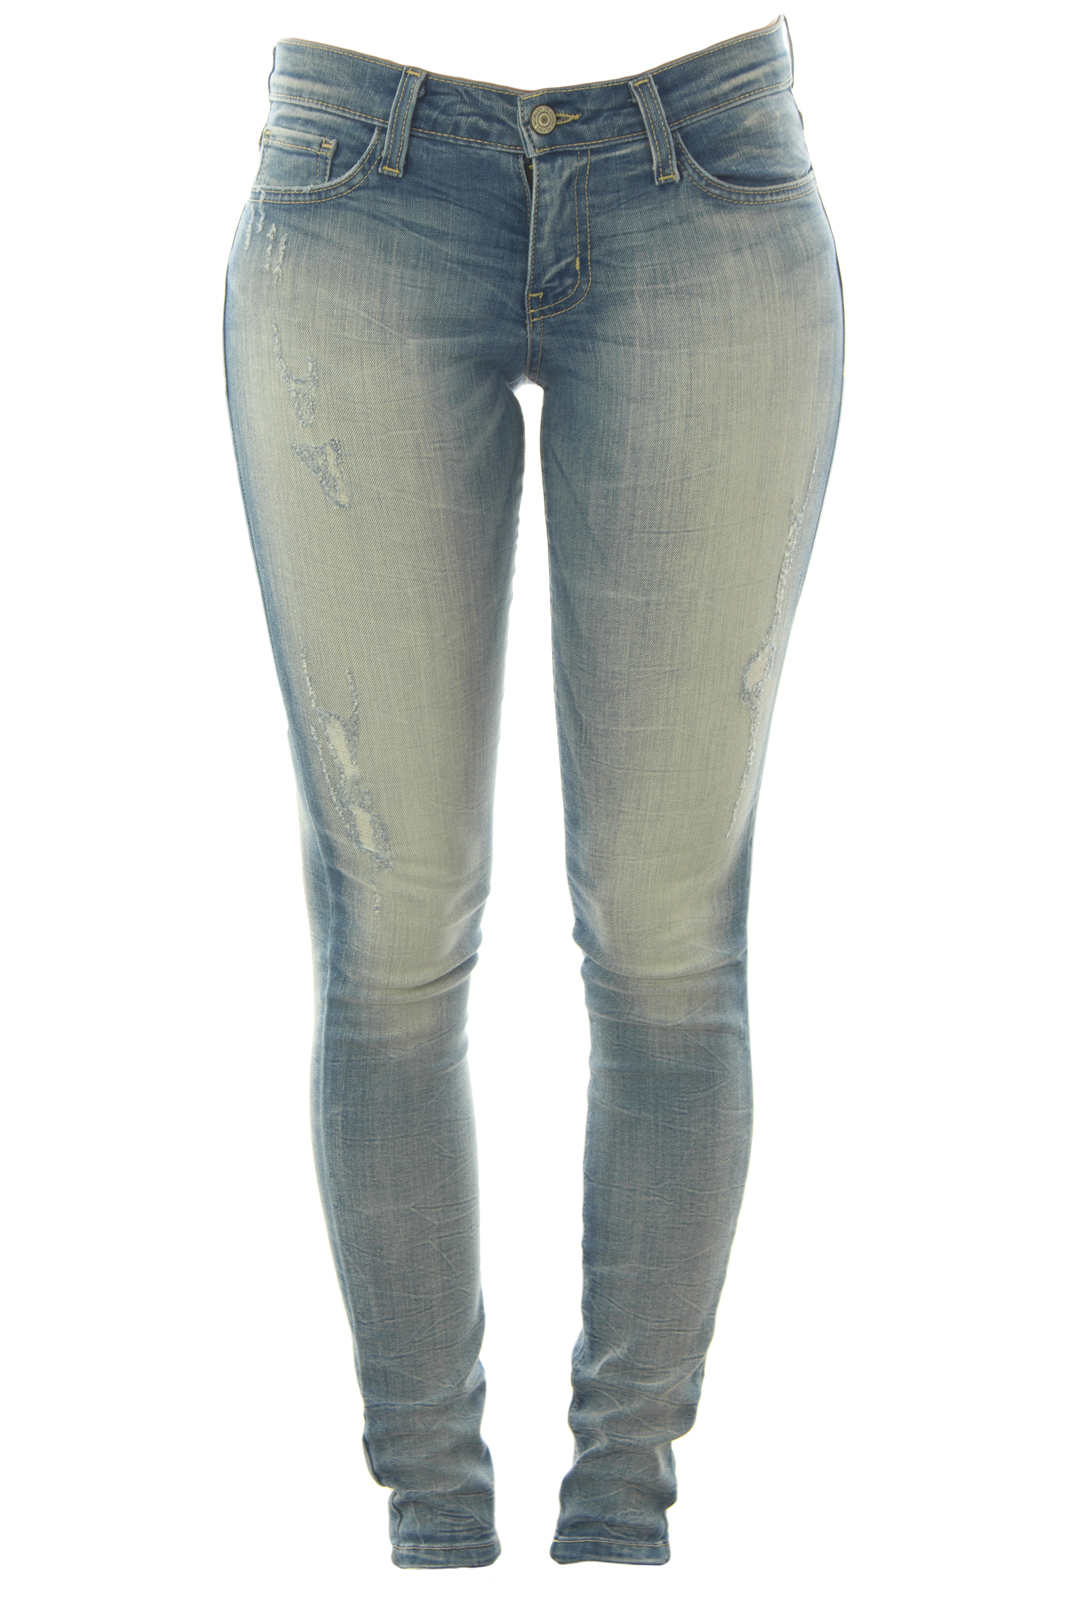 Flying Monkey Crinkle Wash Skinny Jeans 25 Light Denim